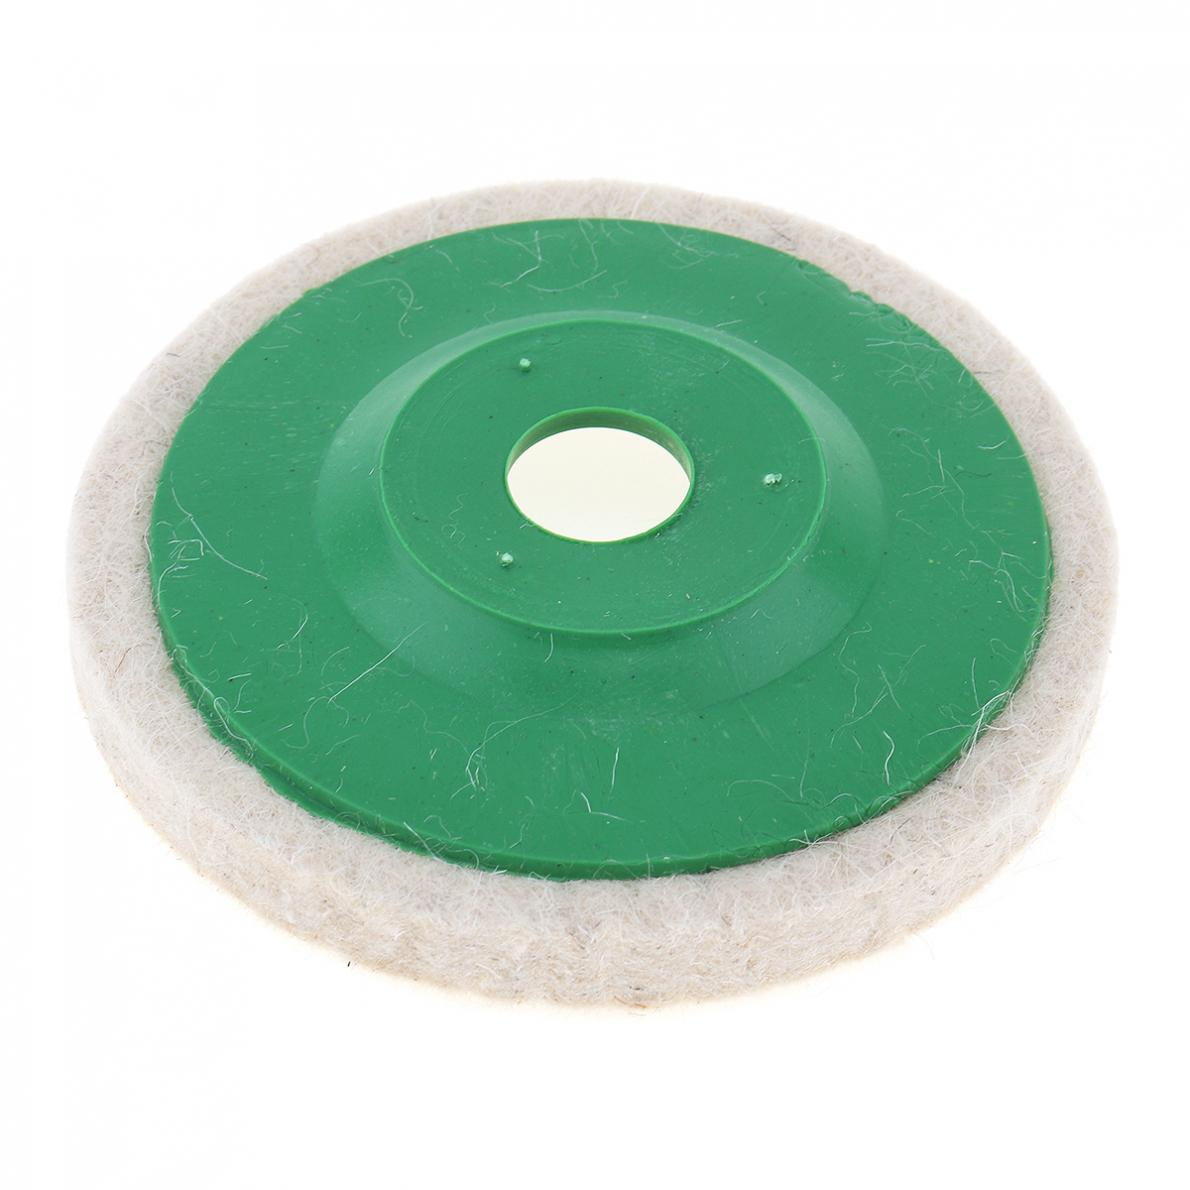 Precision Soft Wool Polishing Plate Felt Wheel For Metal / Glass / Ceramics